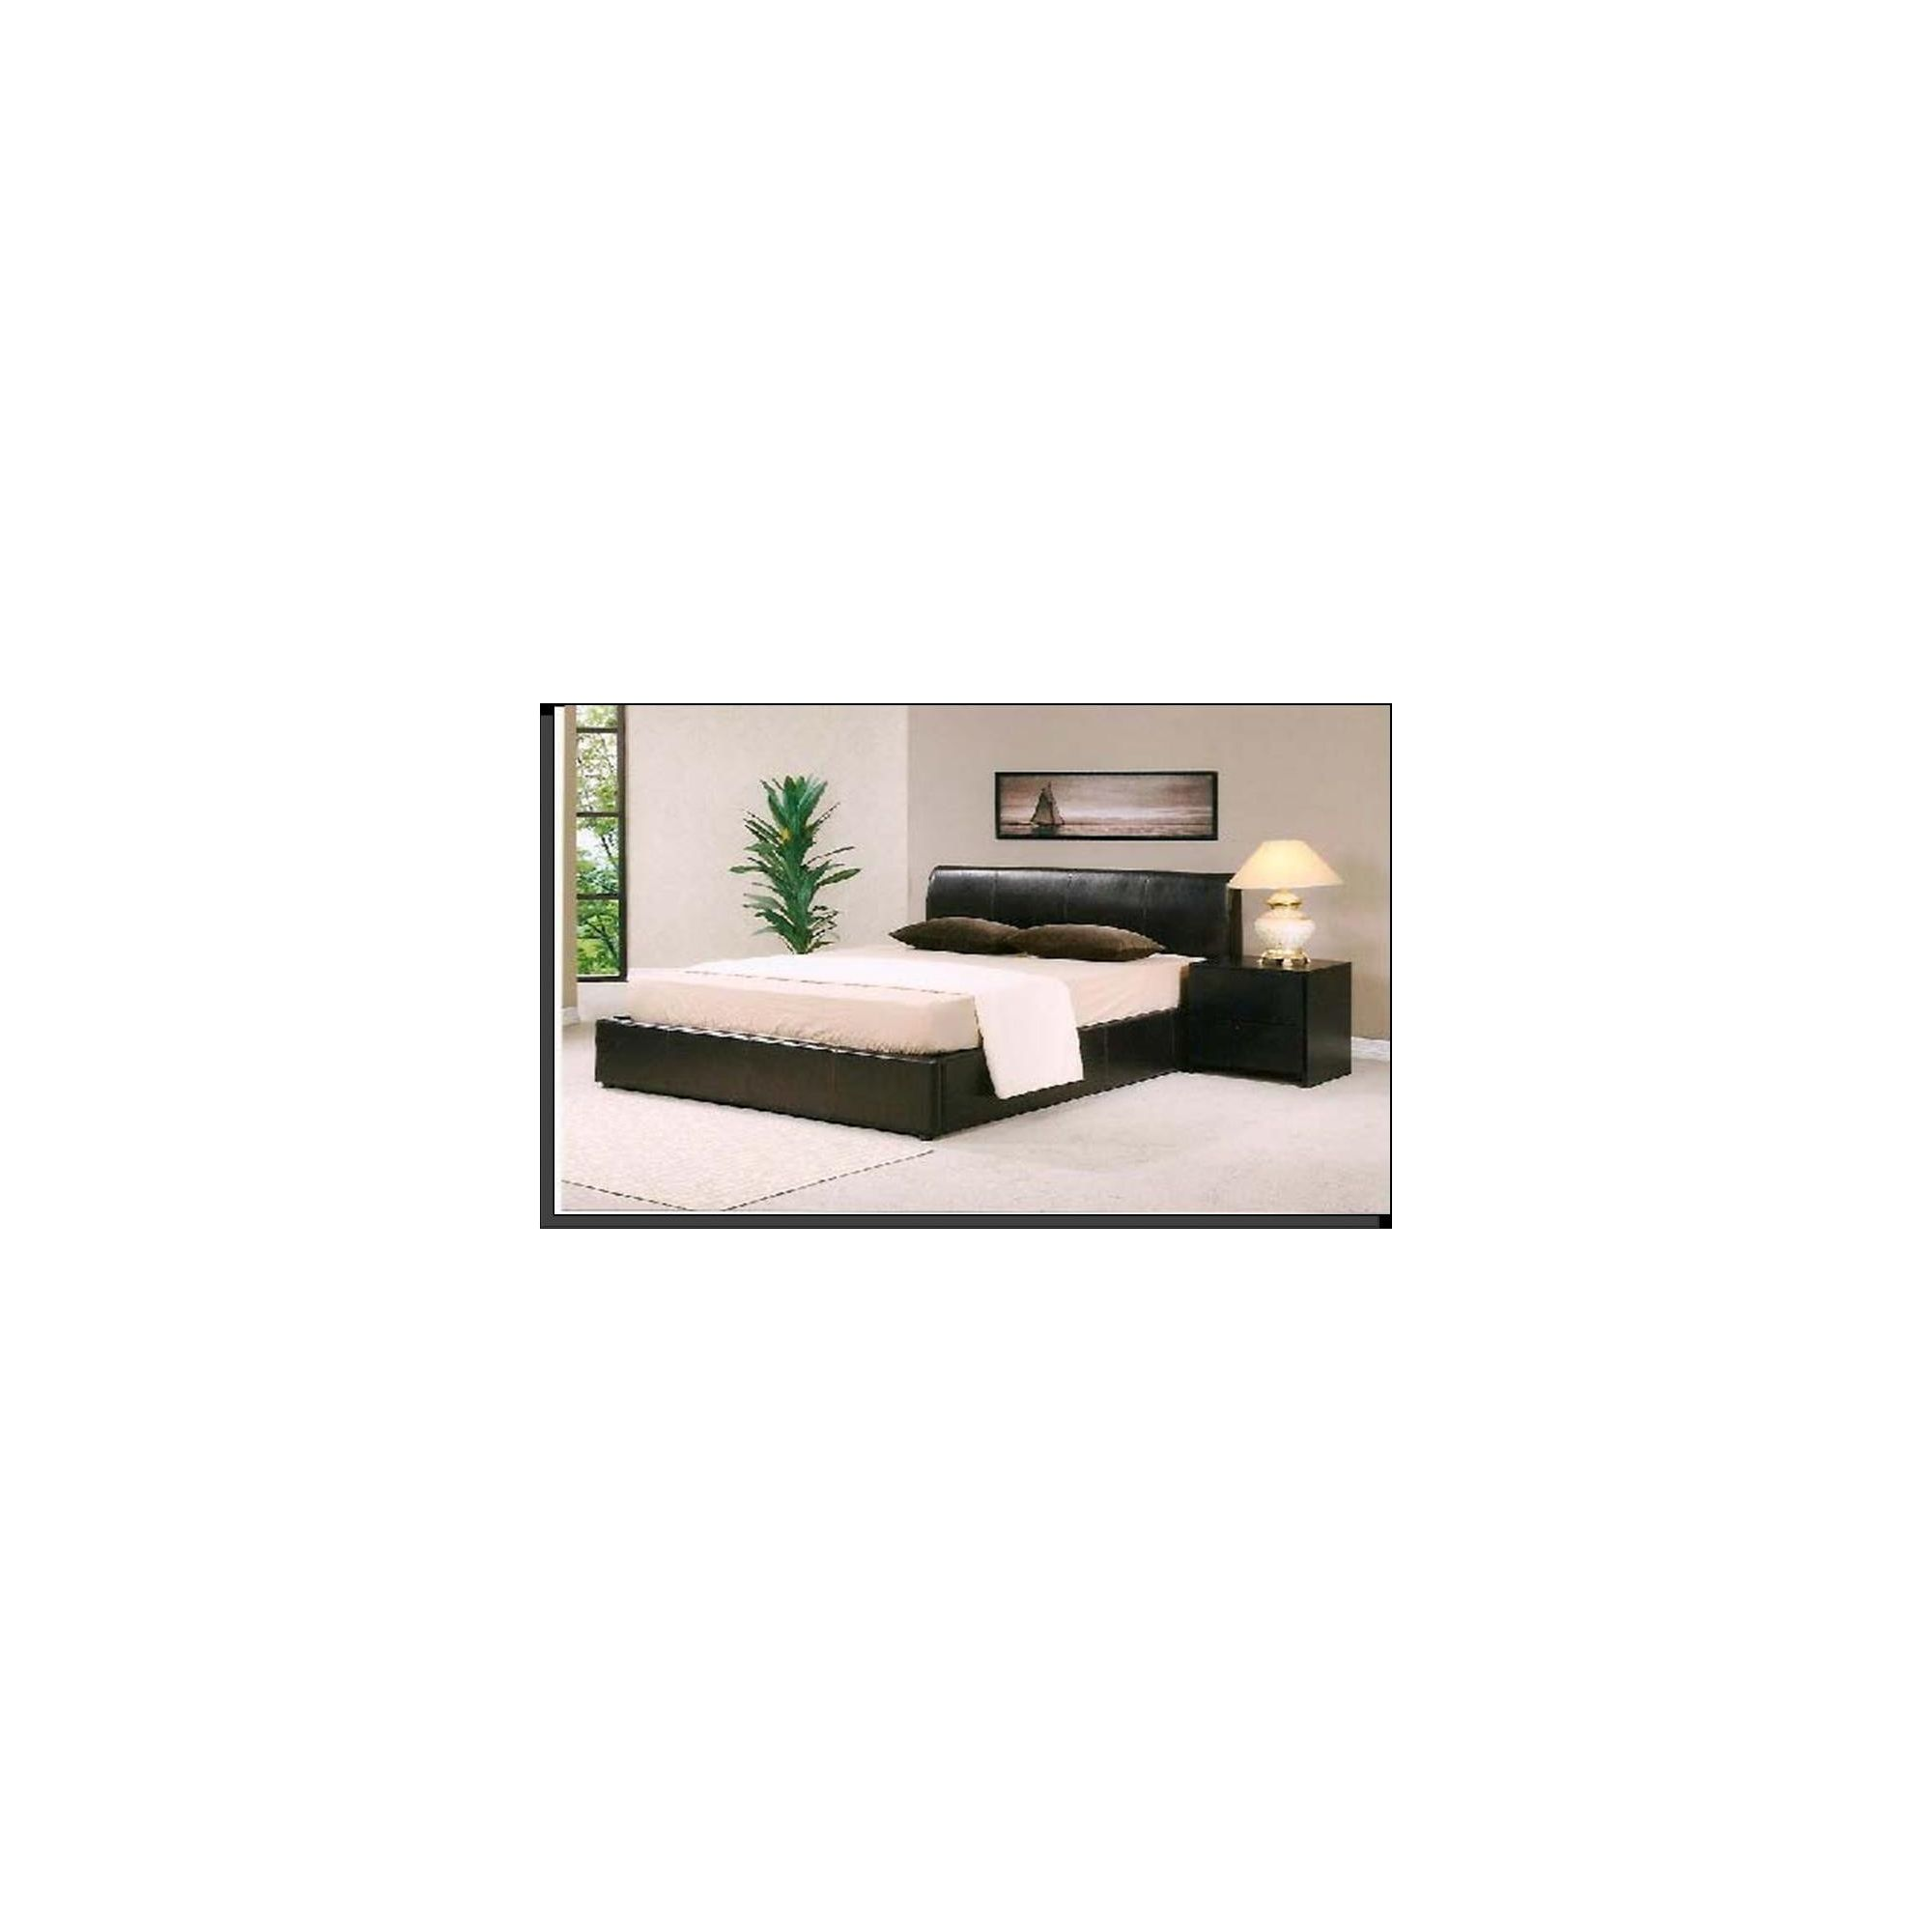 Ideal Furniture Elise Storage Bed - Black - King at Tesco Direct